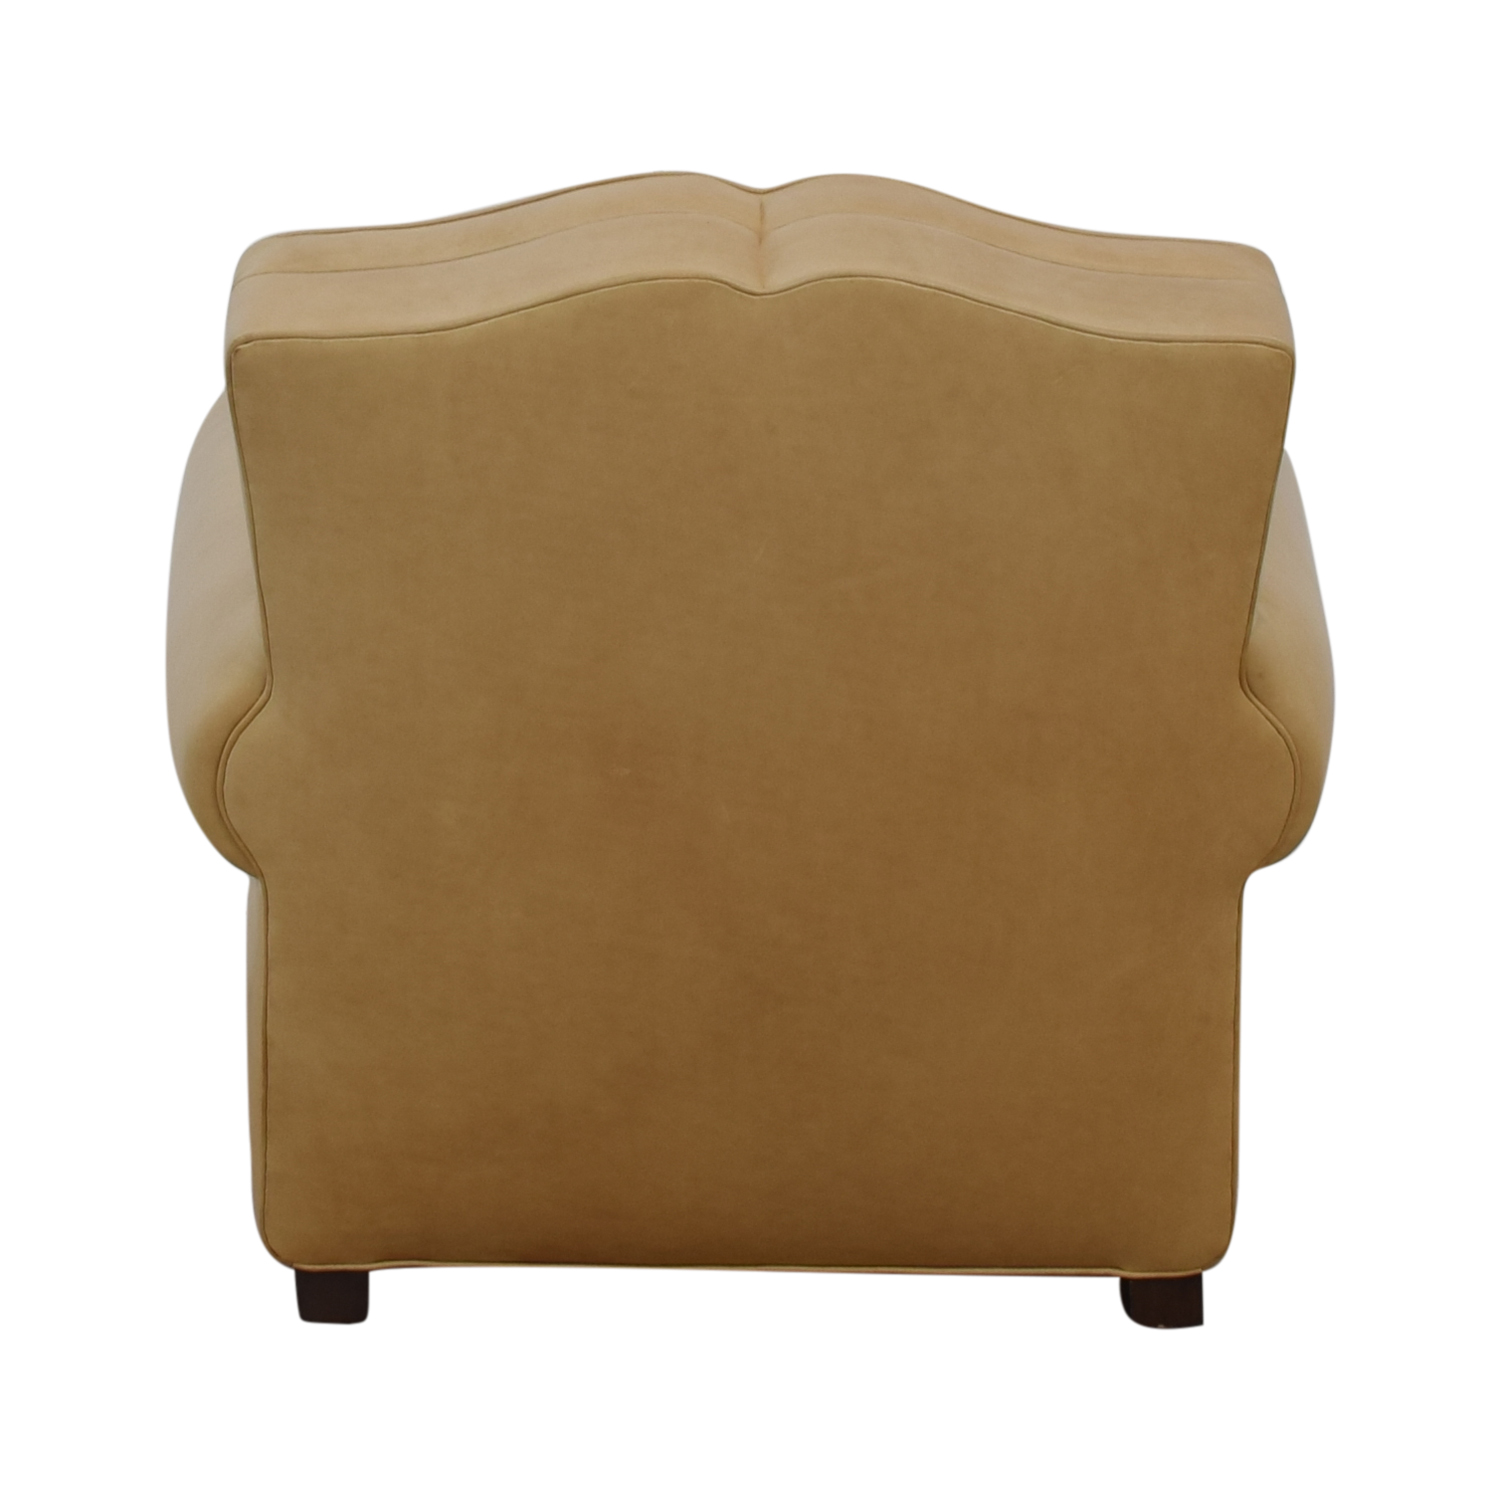 Furniture Masters Furniture Masters Neutral Club Chair nyc